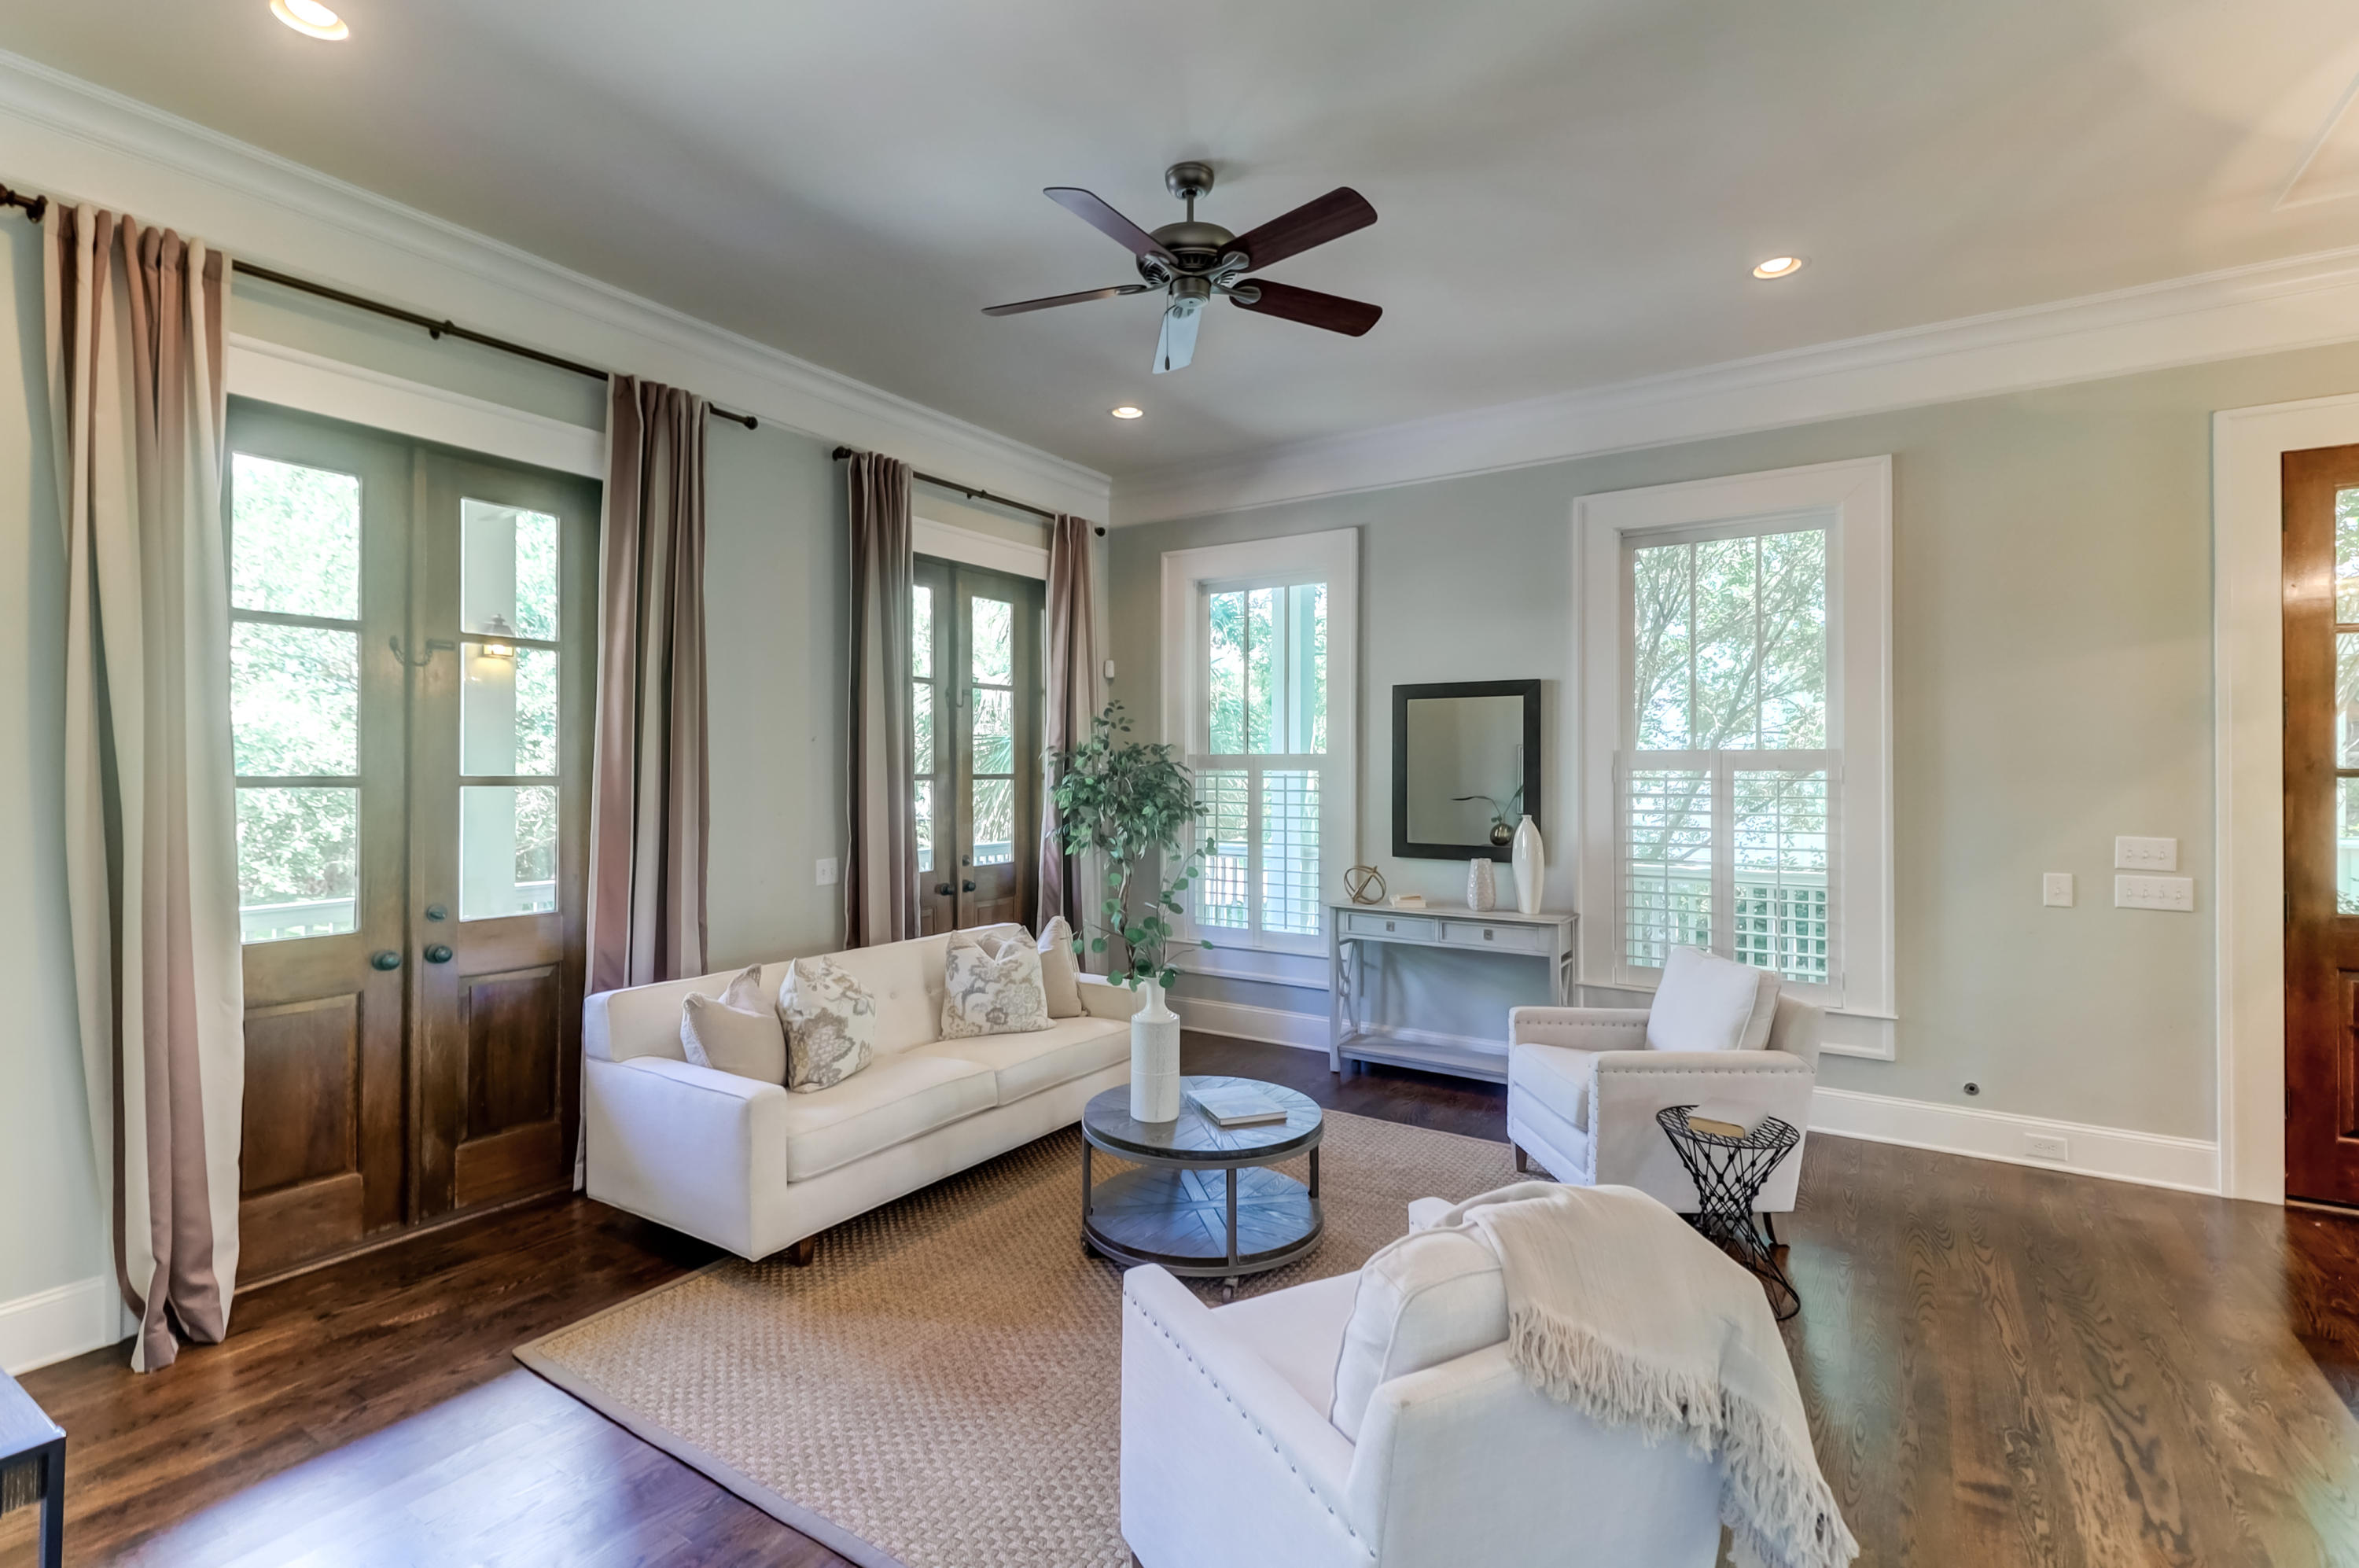 Belle Hall Homes For Sale - 713 Stucco, Mount Pleasant, SC - 2